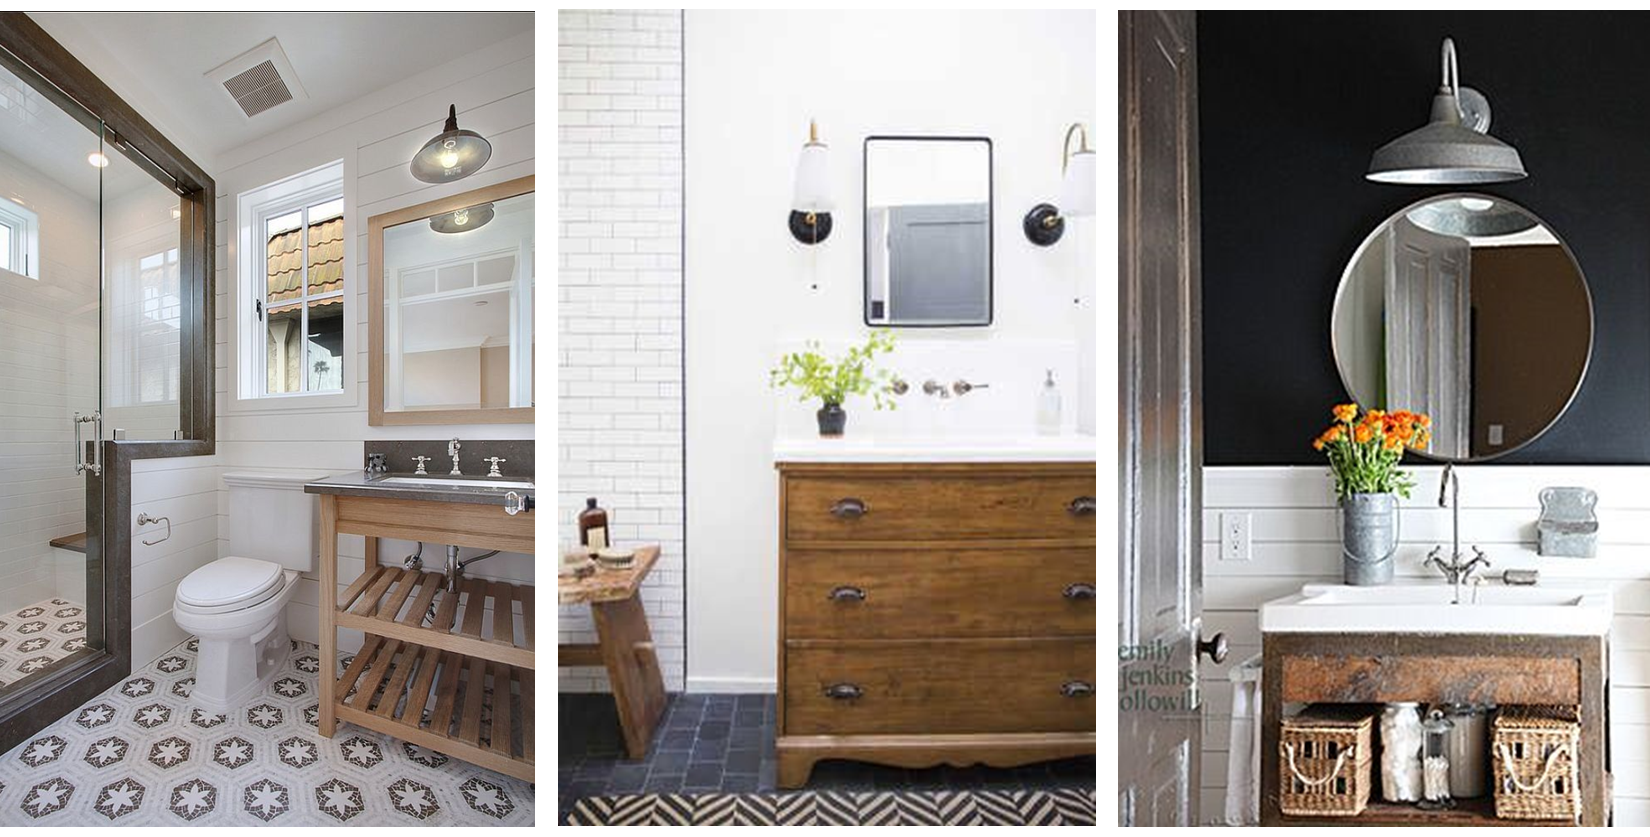 Design The Buy It Twice Bathroom Project What Hopes Dreams Are Made Of